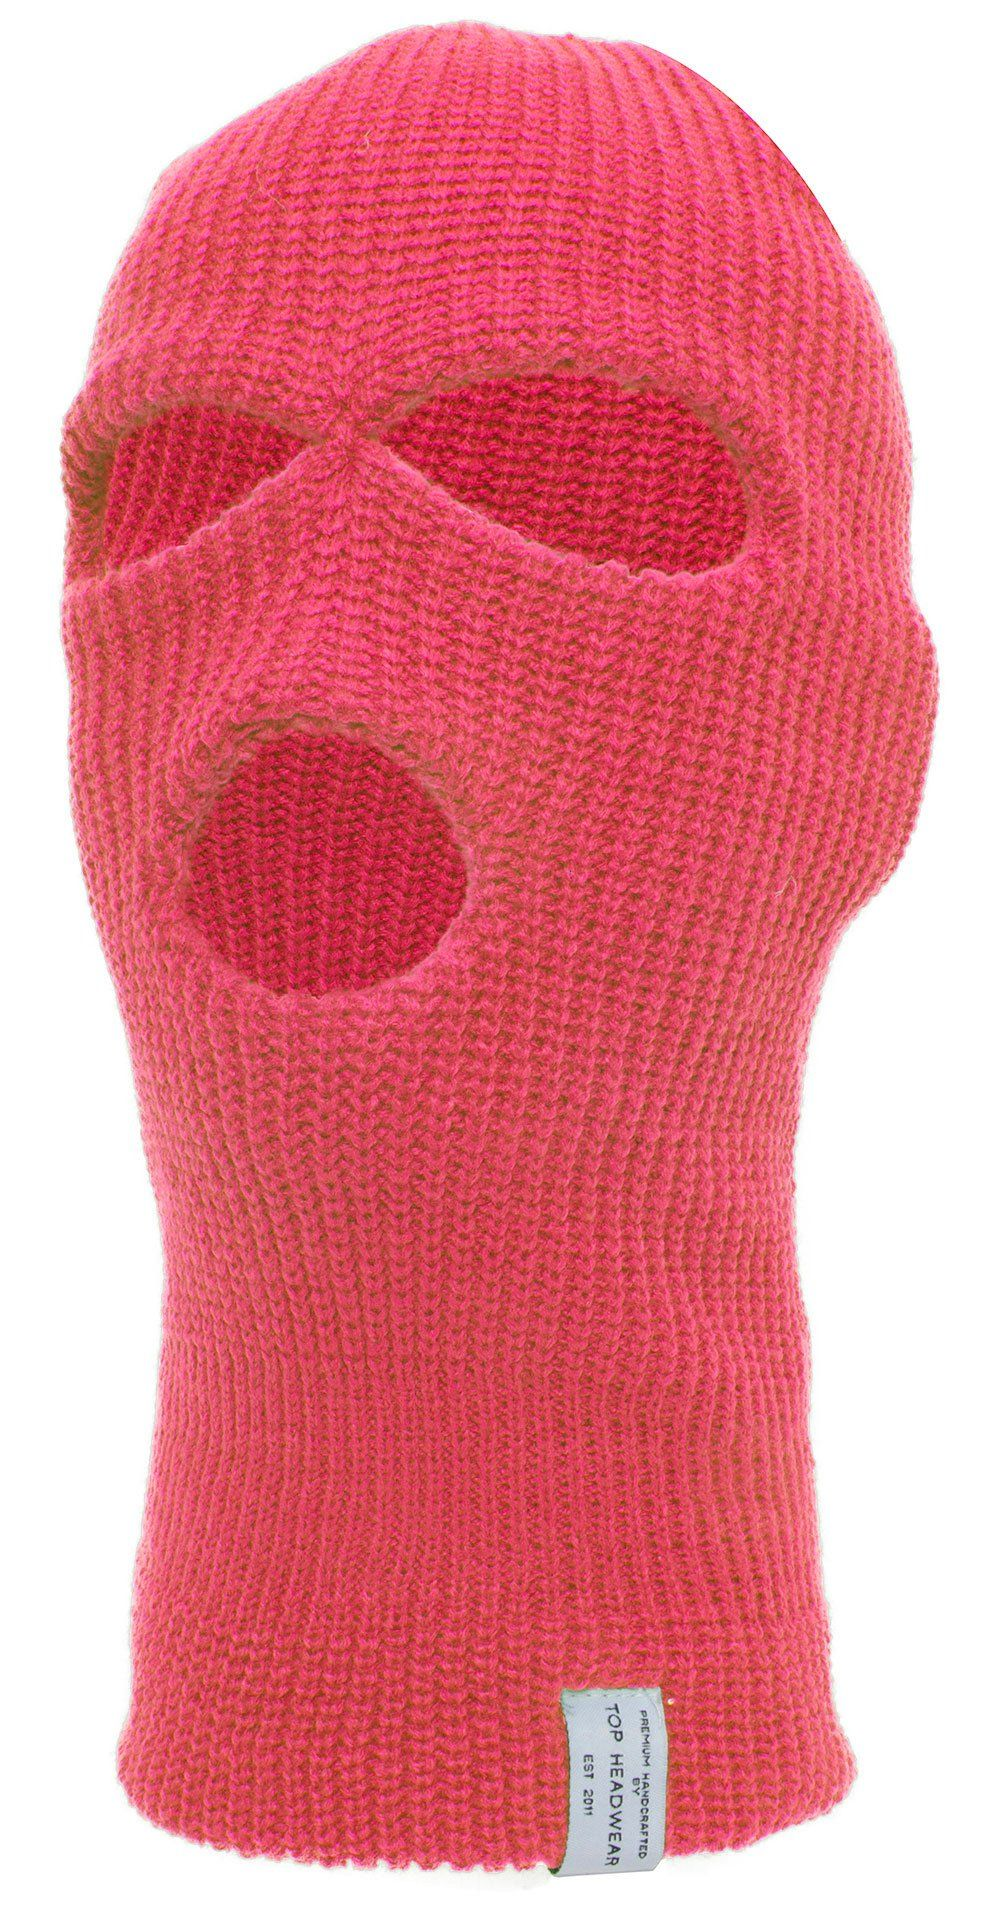 Top Headwear Three Hole Neon Colored Ski Mask H Pink One Size Fits Most 100 Acrylic Athletic Outfits Balaclava Ski Mask